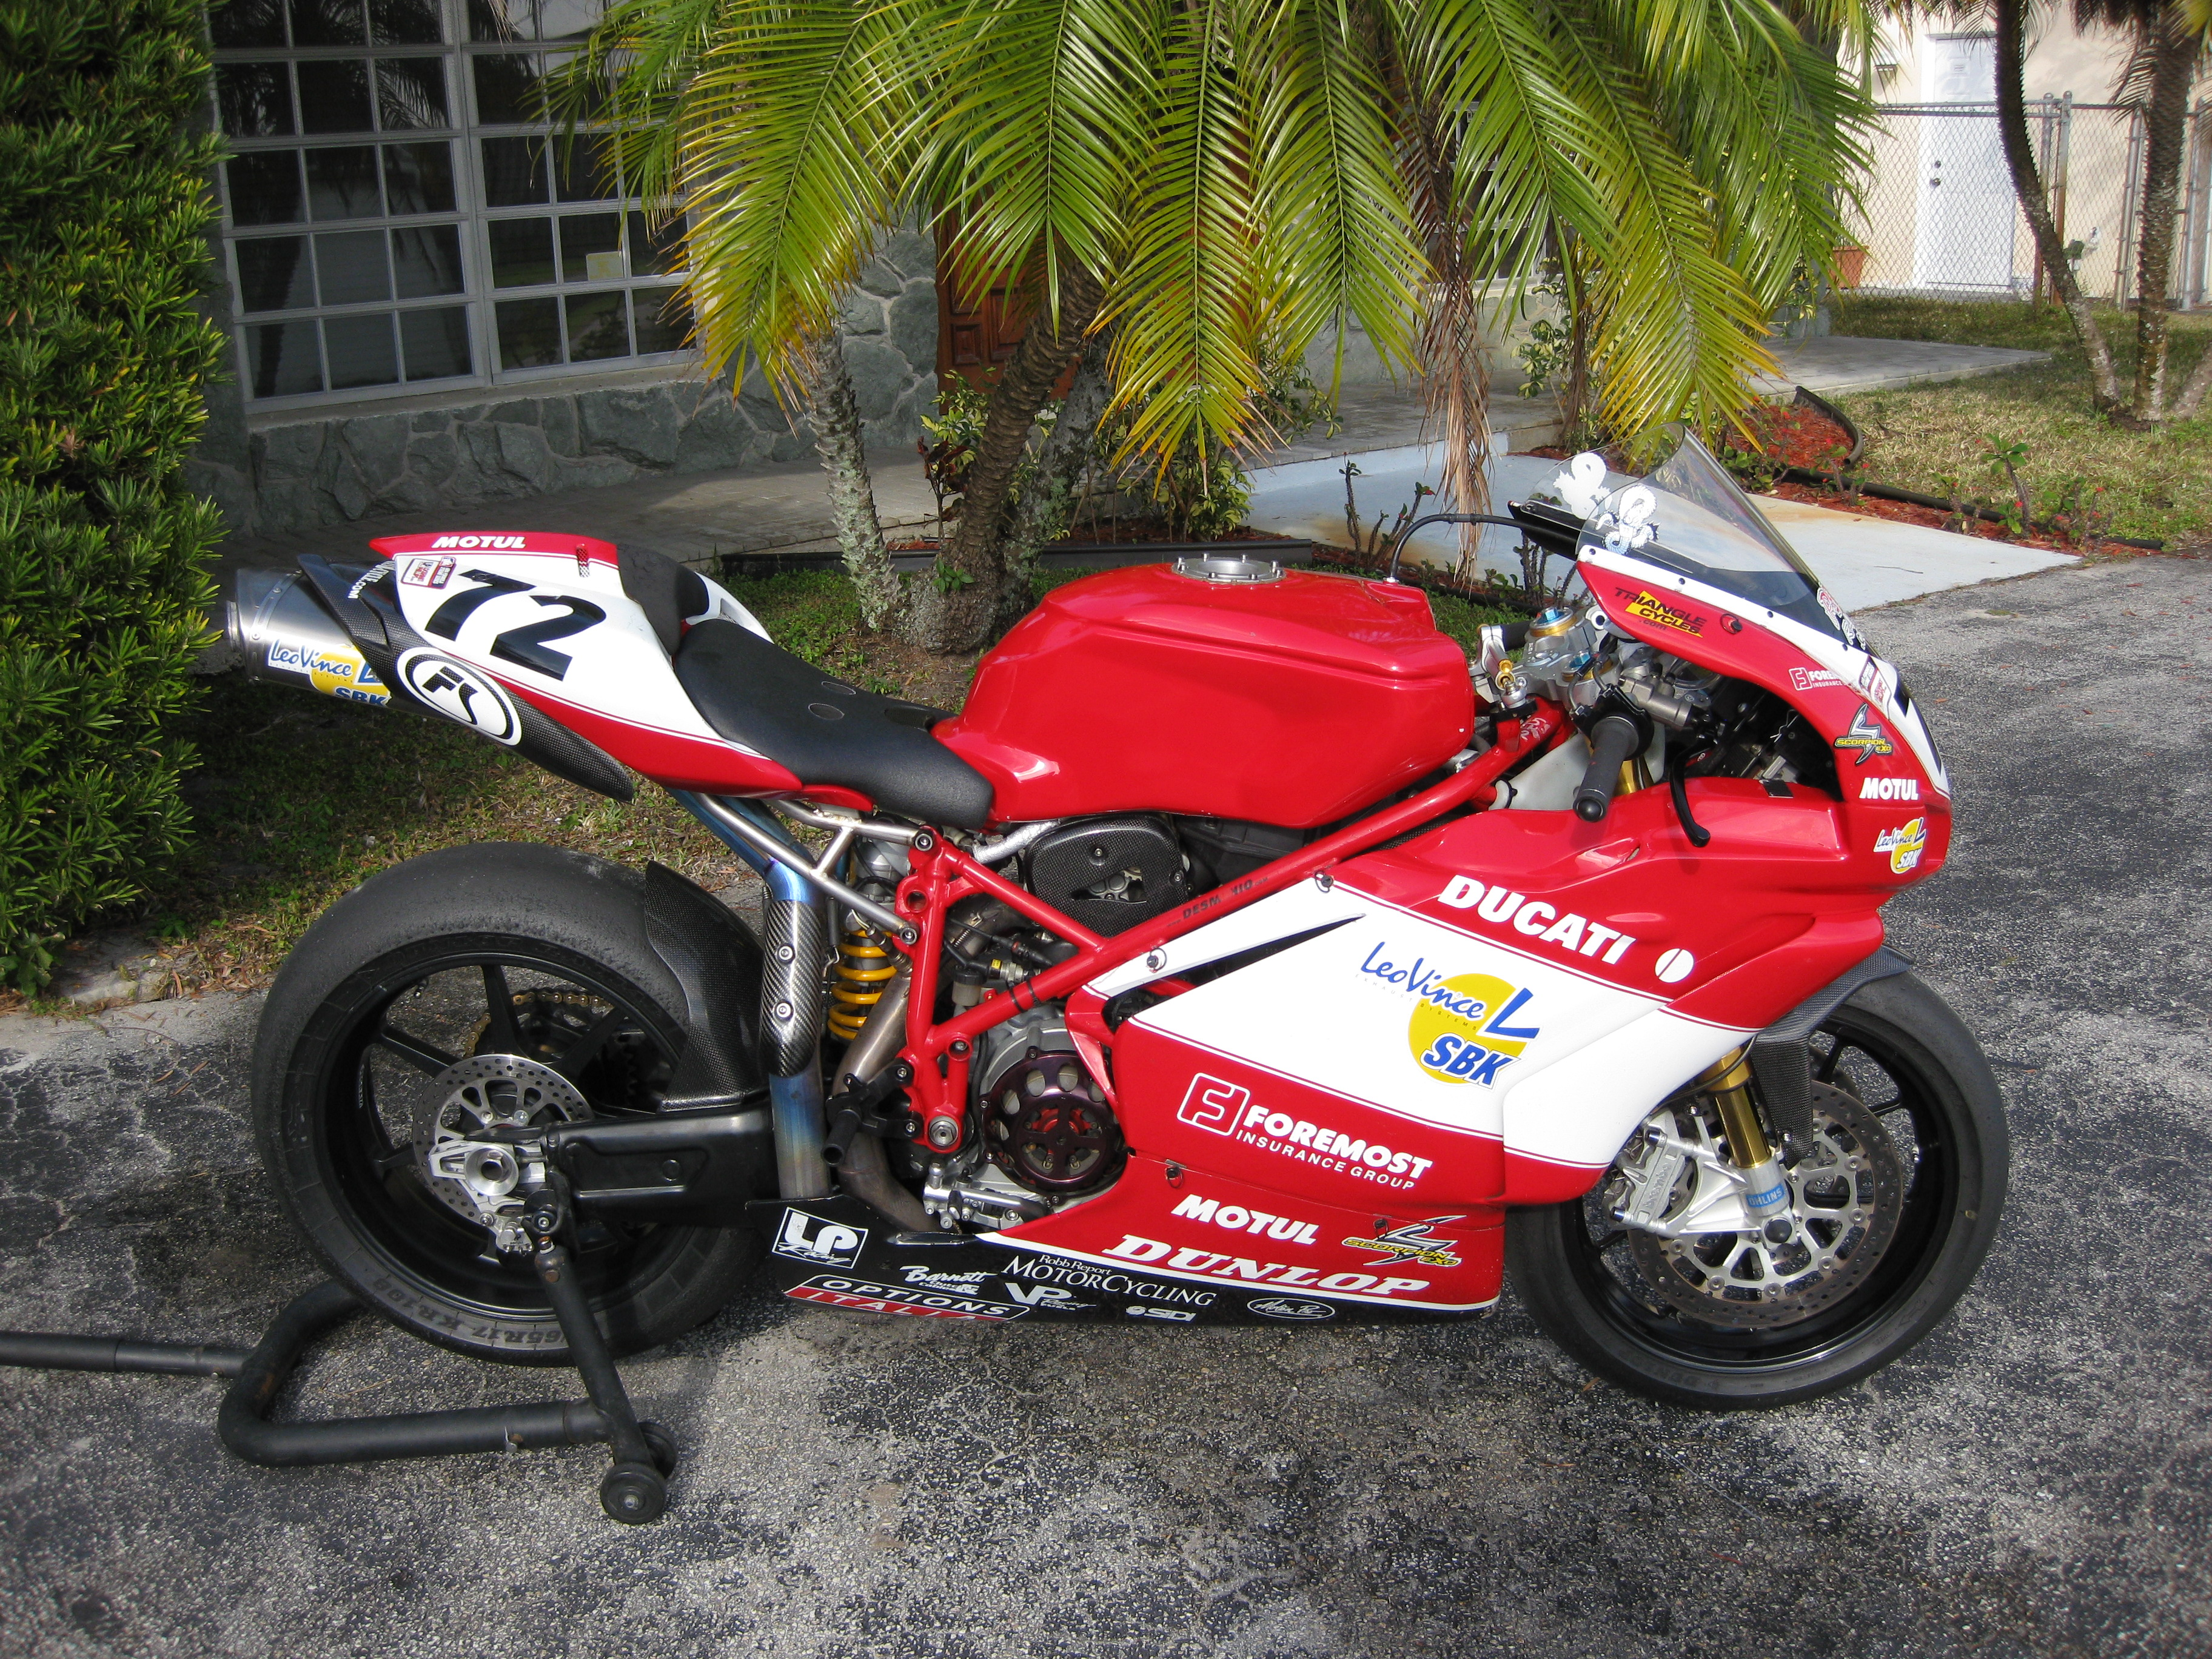 ducati corse Shell's technical partnership with ducati corse has grown into one of the most successful collaborations in motorsport.